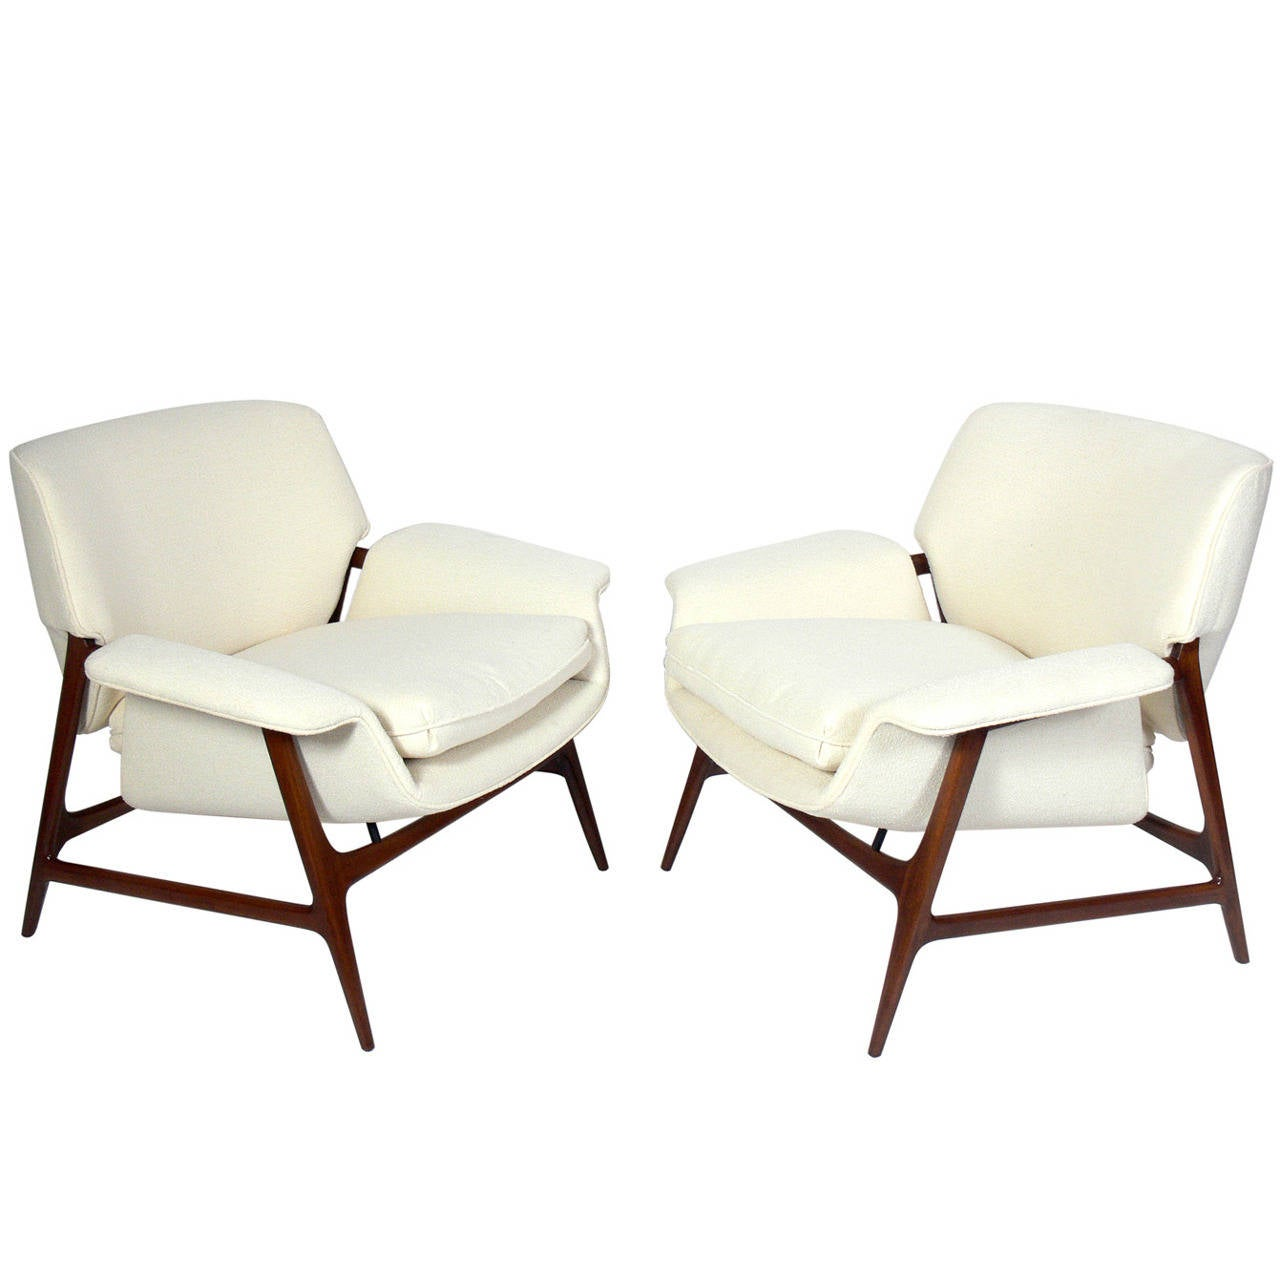 this pair of danish modern lounge chairs is no longer available